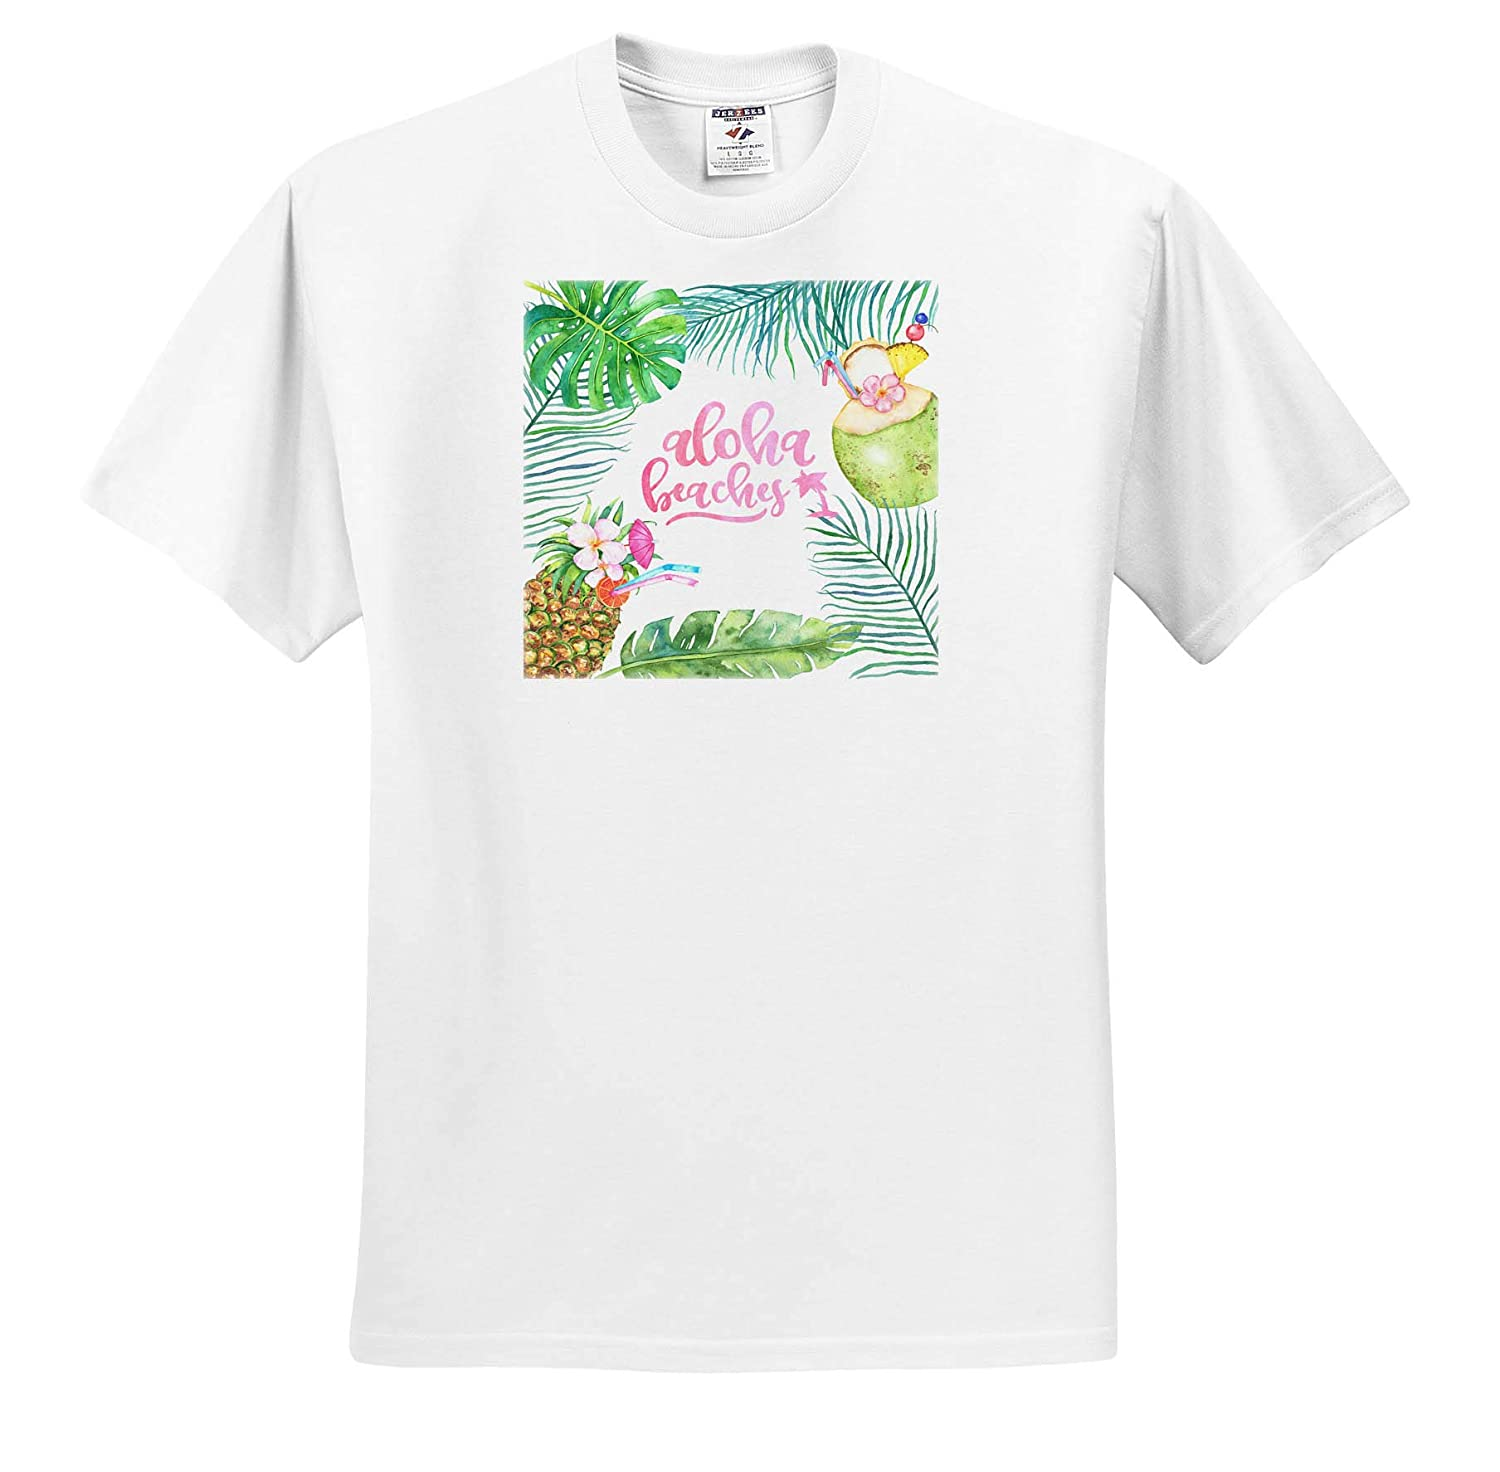 3dRose Uta Naumann Sayings and Typography Summer Tropical Holiday Typography Aloha Beaches T-Shirts